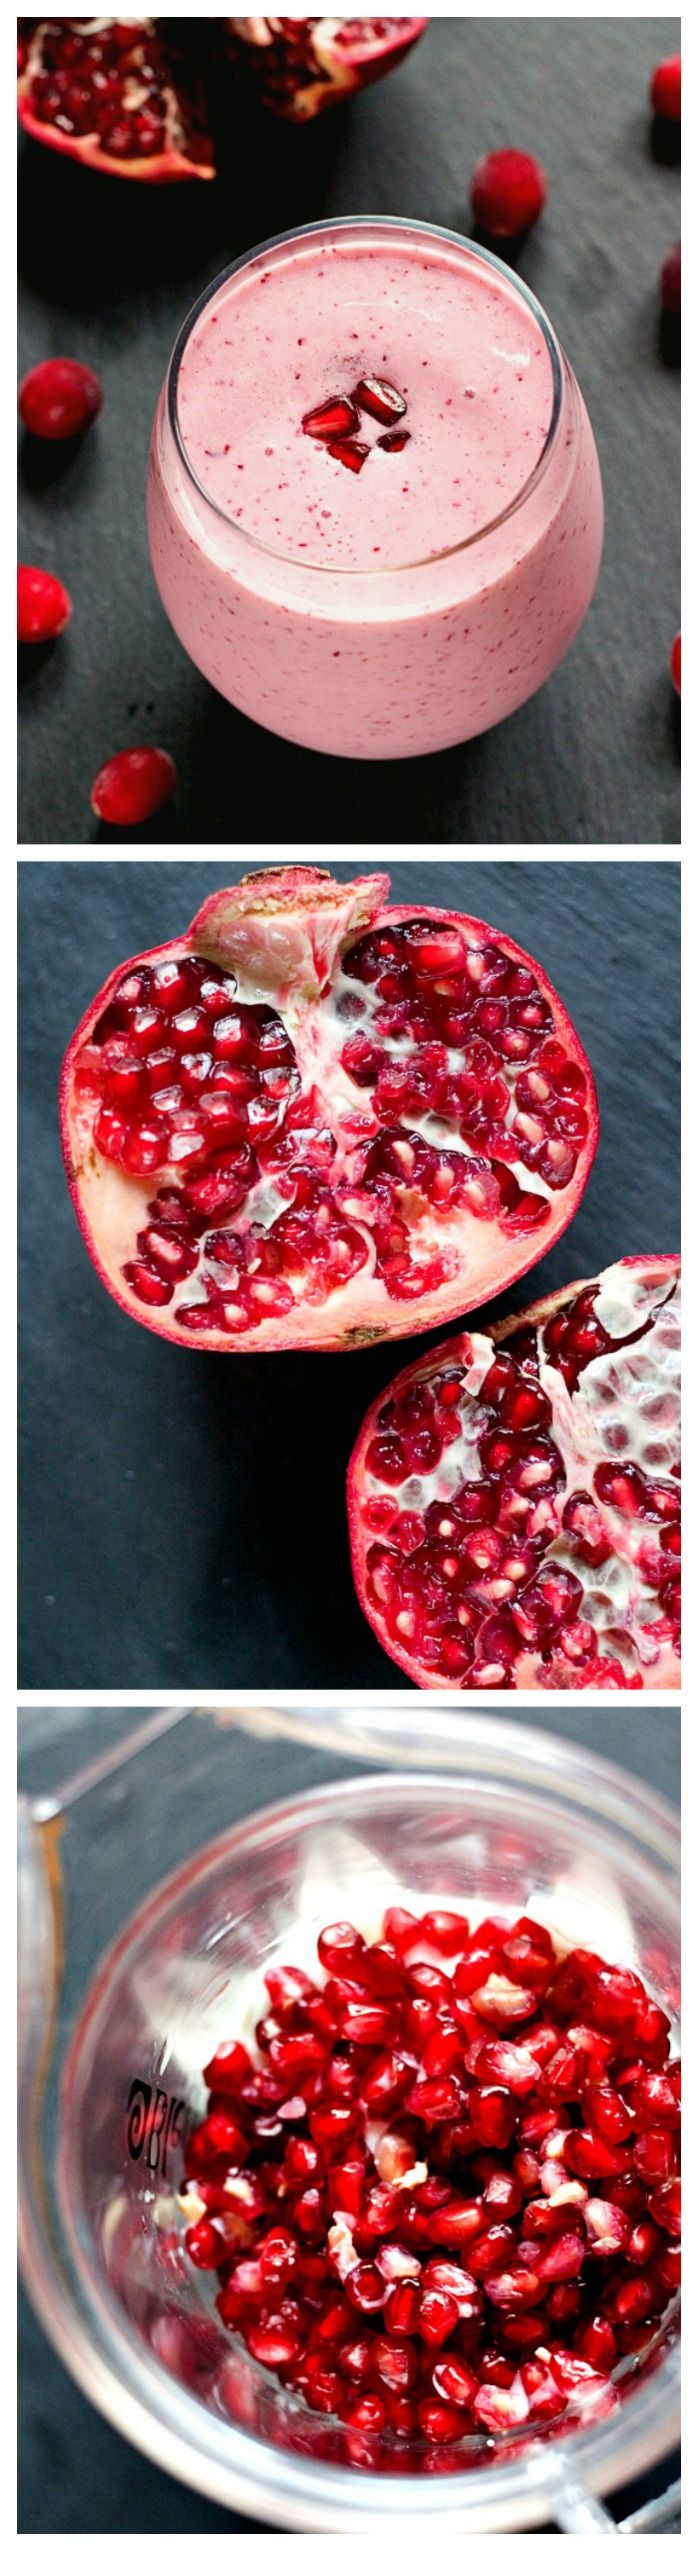 Cranberry Pomegranate Smoothie by crunchcreamsweet: Perfect pick-me-up! #Smoothie #Cranberry #Pomegranate